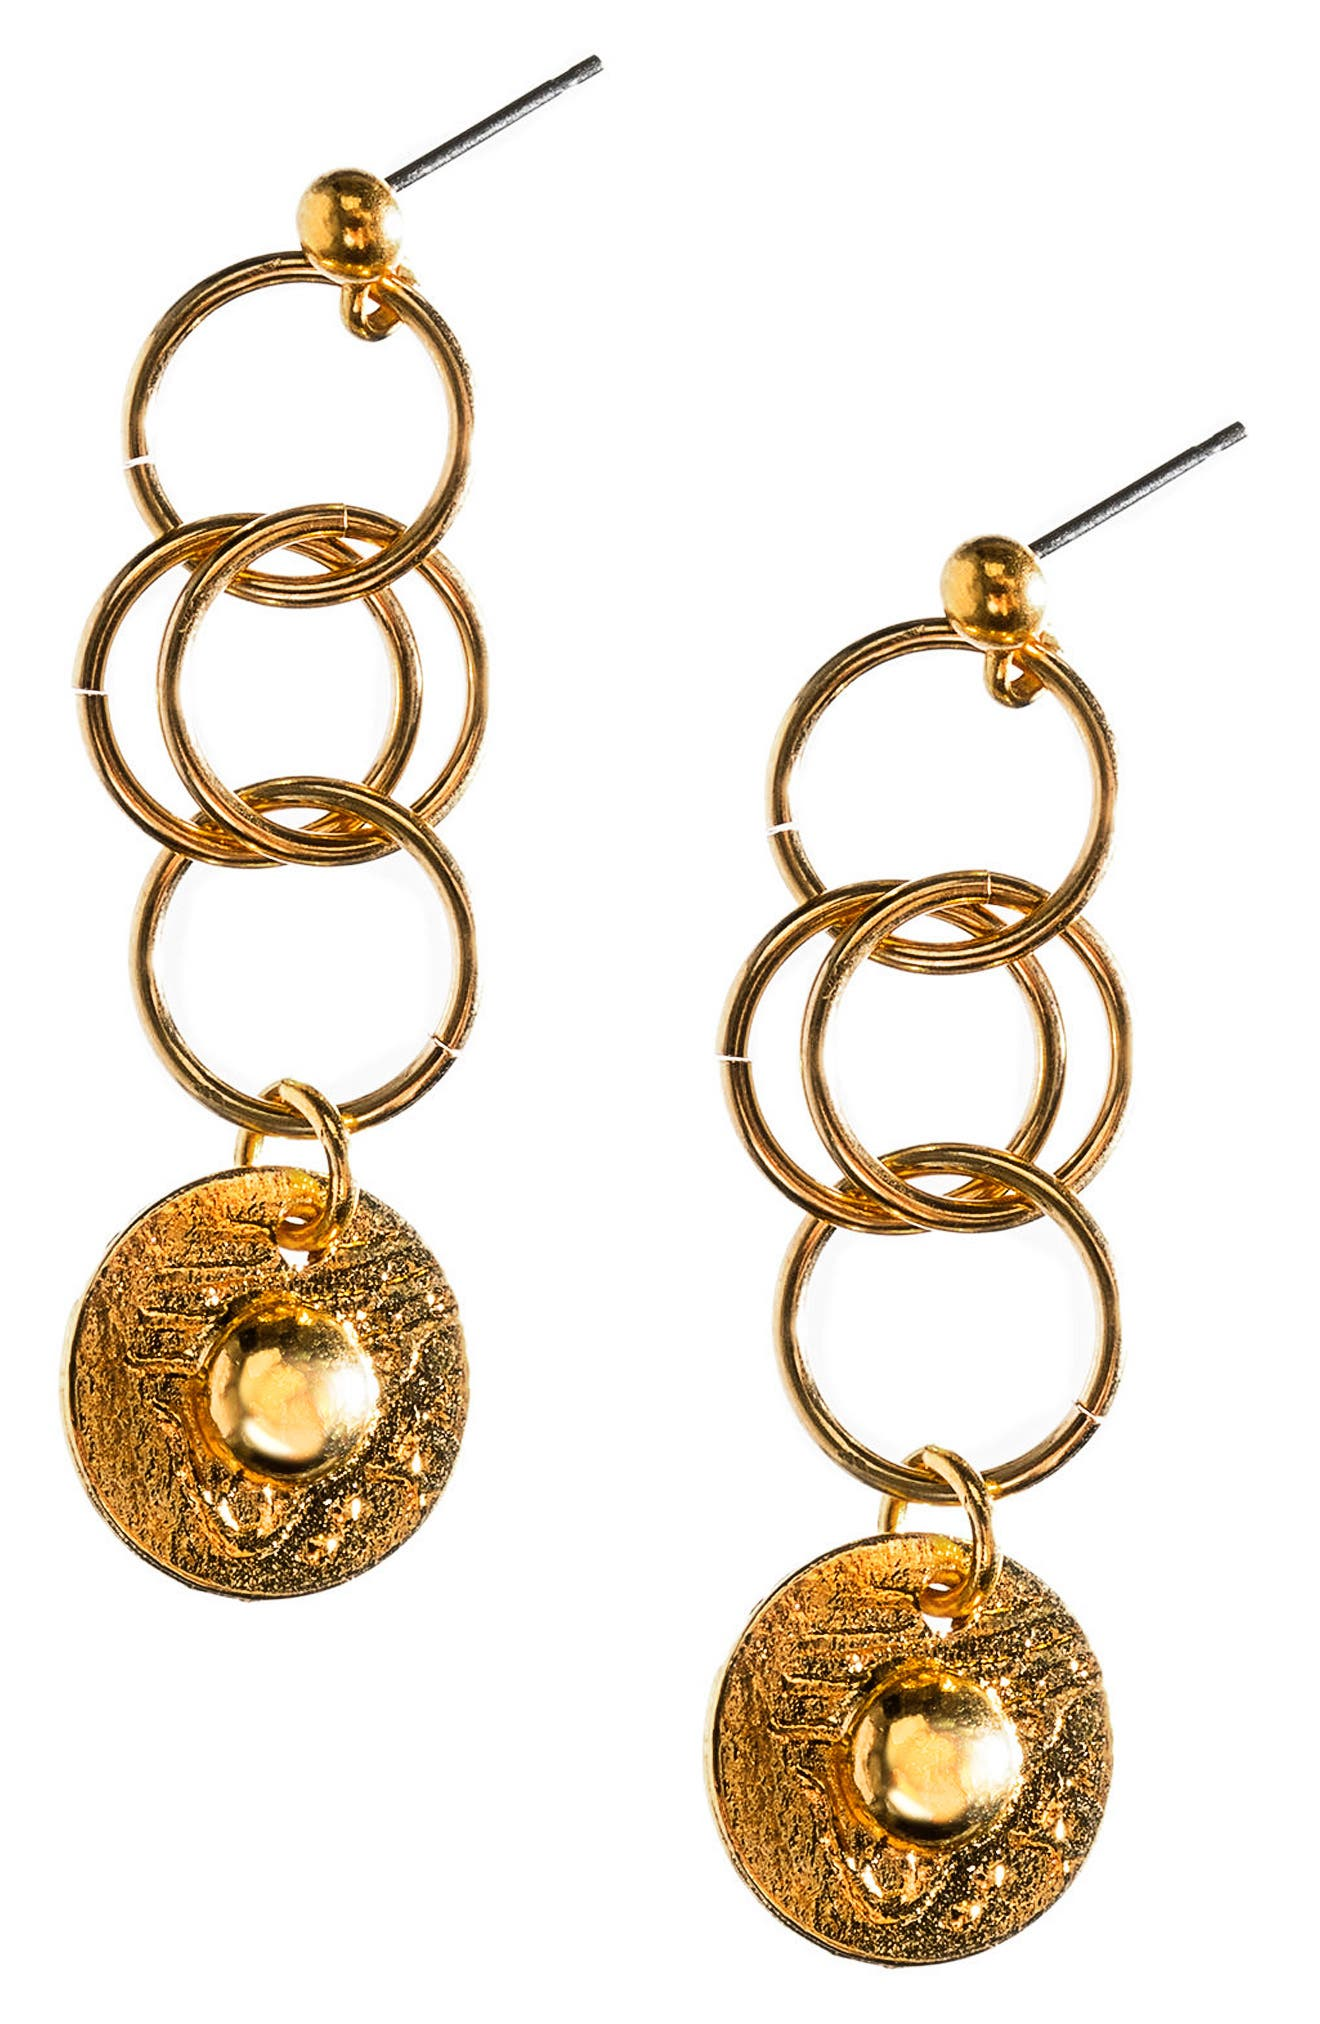 Tri Hoop Coin Earrings,                             Main thumbnail 1, color,                             Gold